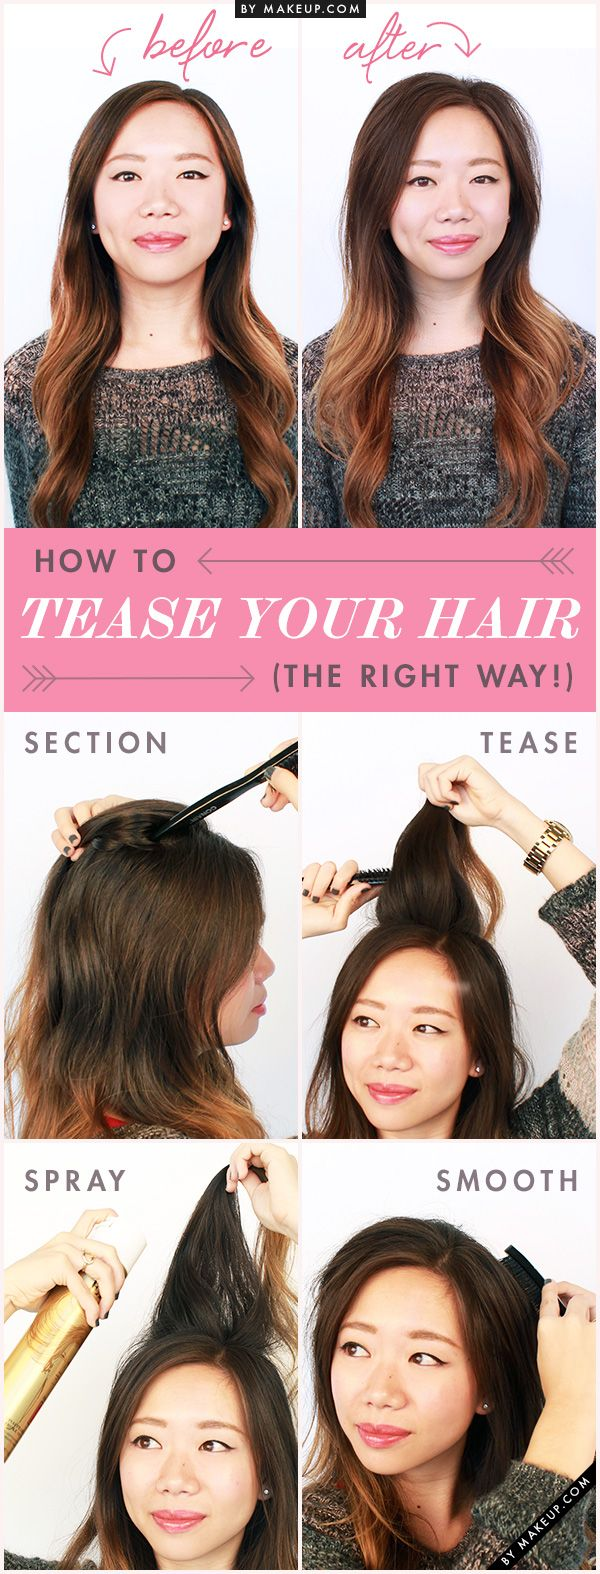 18 Hair Hacks, Tips & Tricks That Will Make Your Life Easier & Your Hair Better